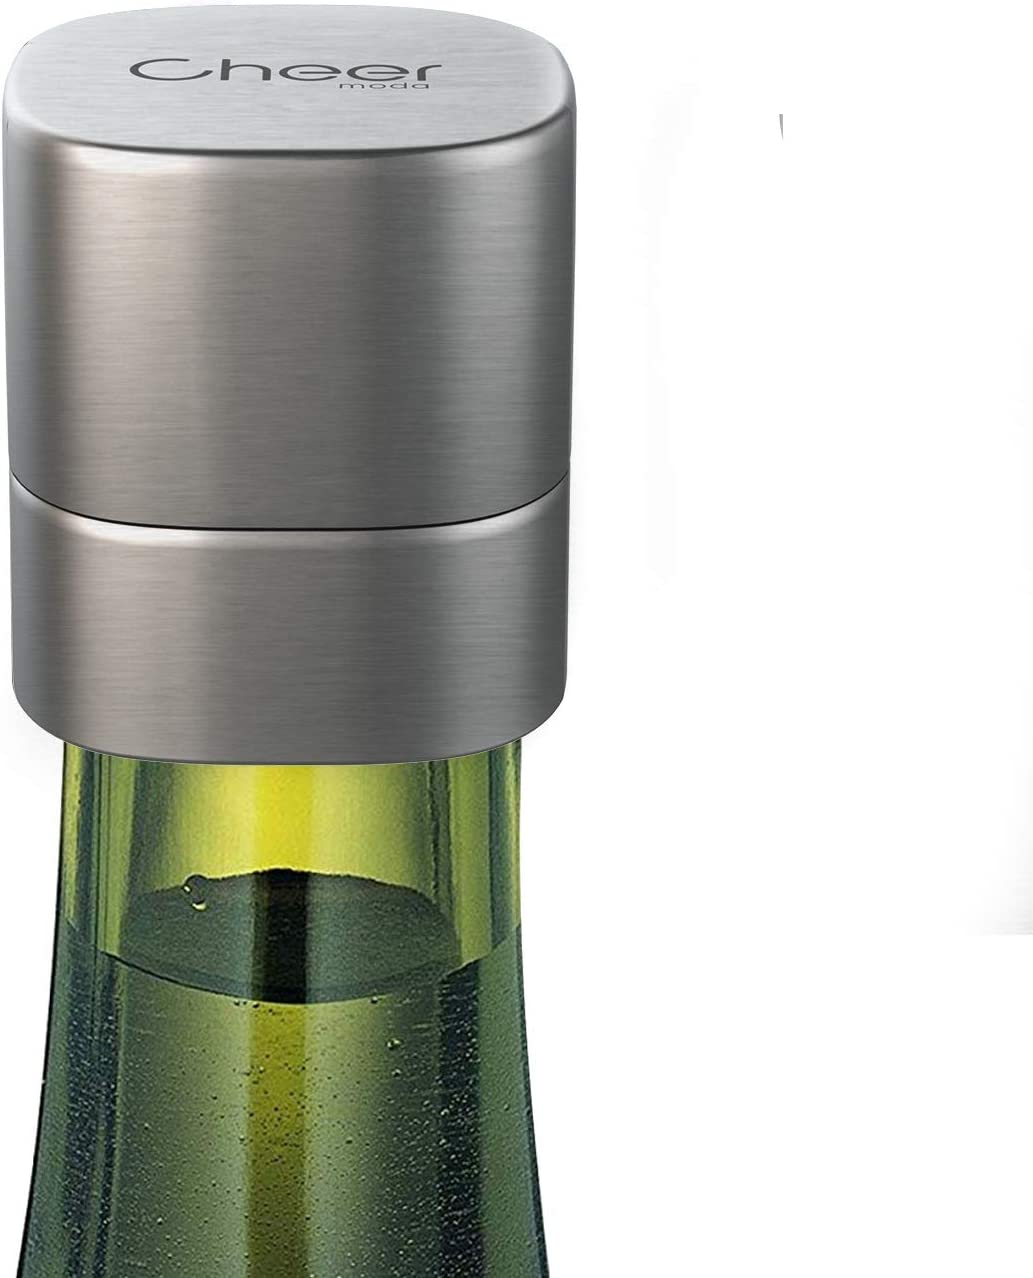 Max 71% Luxury OFF Champagne Stopper Stainless Steel Rese Sealer Wine